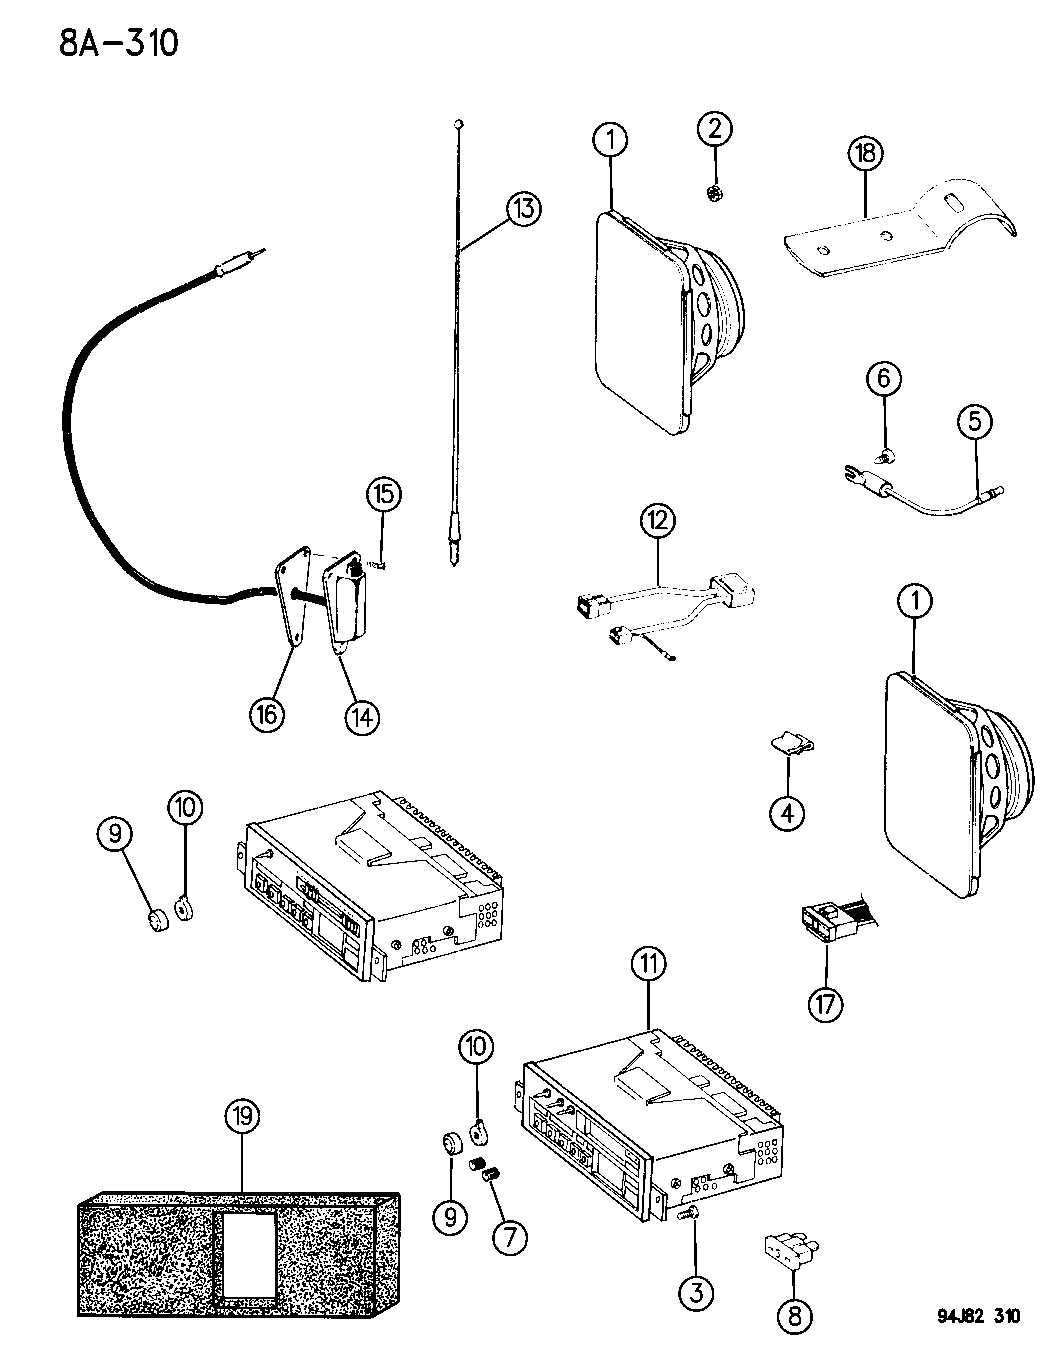 Jeep Wrangler Speaker Wire Diagram as well Search together with P 0900c1528008b038 together with 1991 Jeep Cherokee Ignition Wiring Diagram Grand Wj Stereo System Diagrams For 1995 On 98 also 03 Jeep Wrangler Wiring Diagram. on jeep yj instrument panel